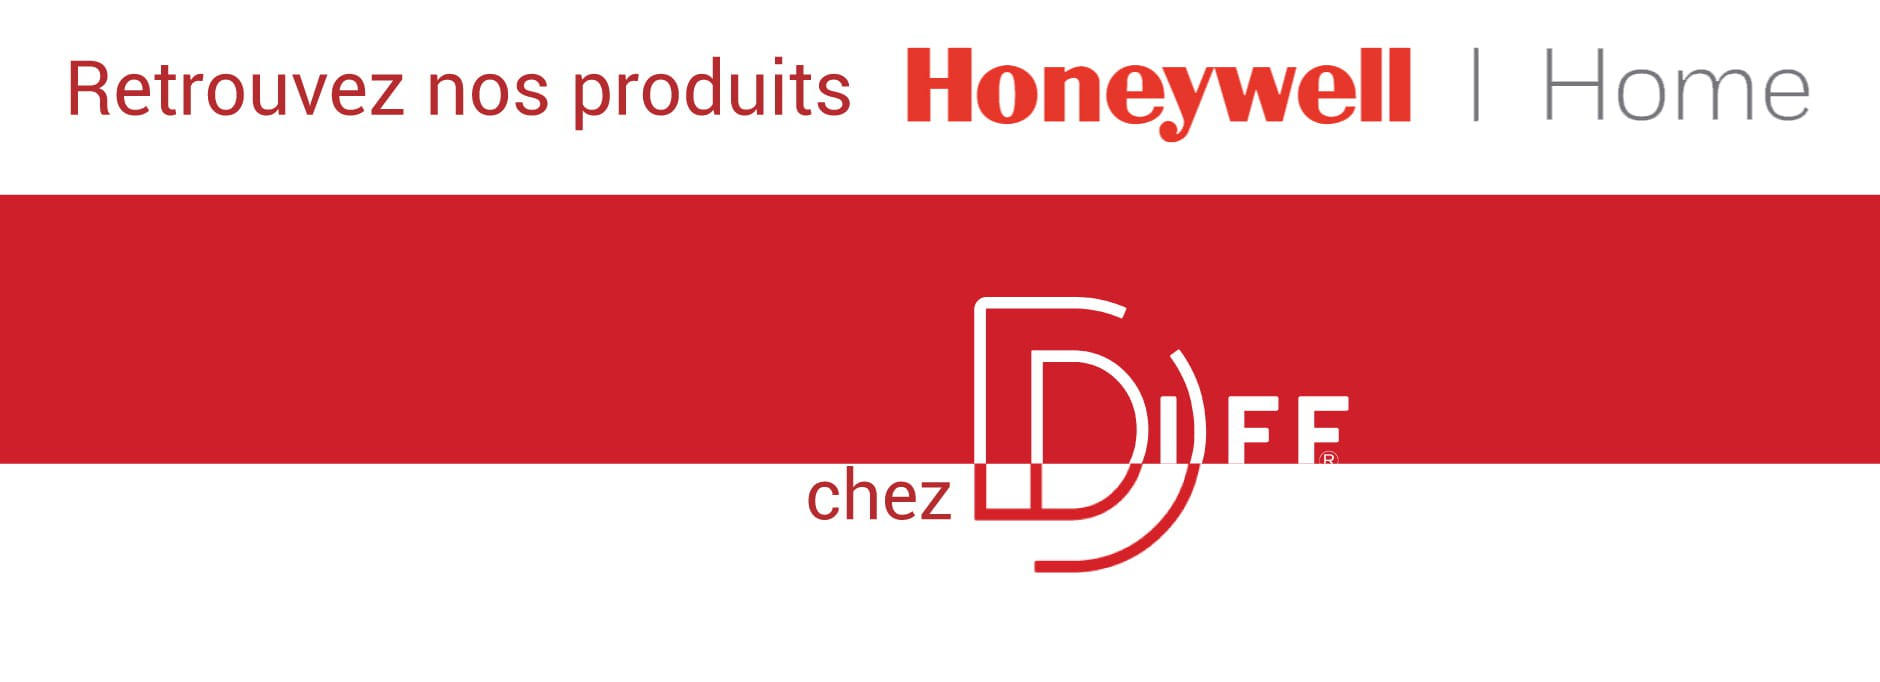 Honey Well Home chez Diff